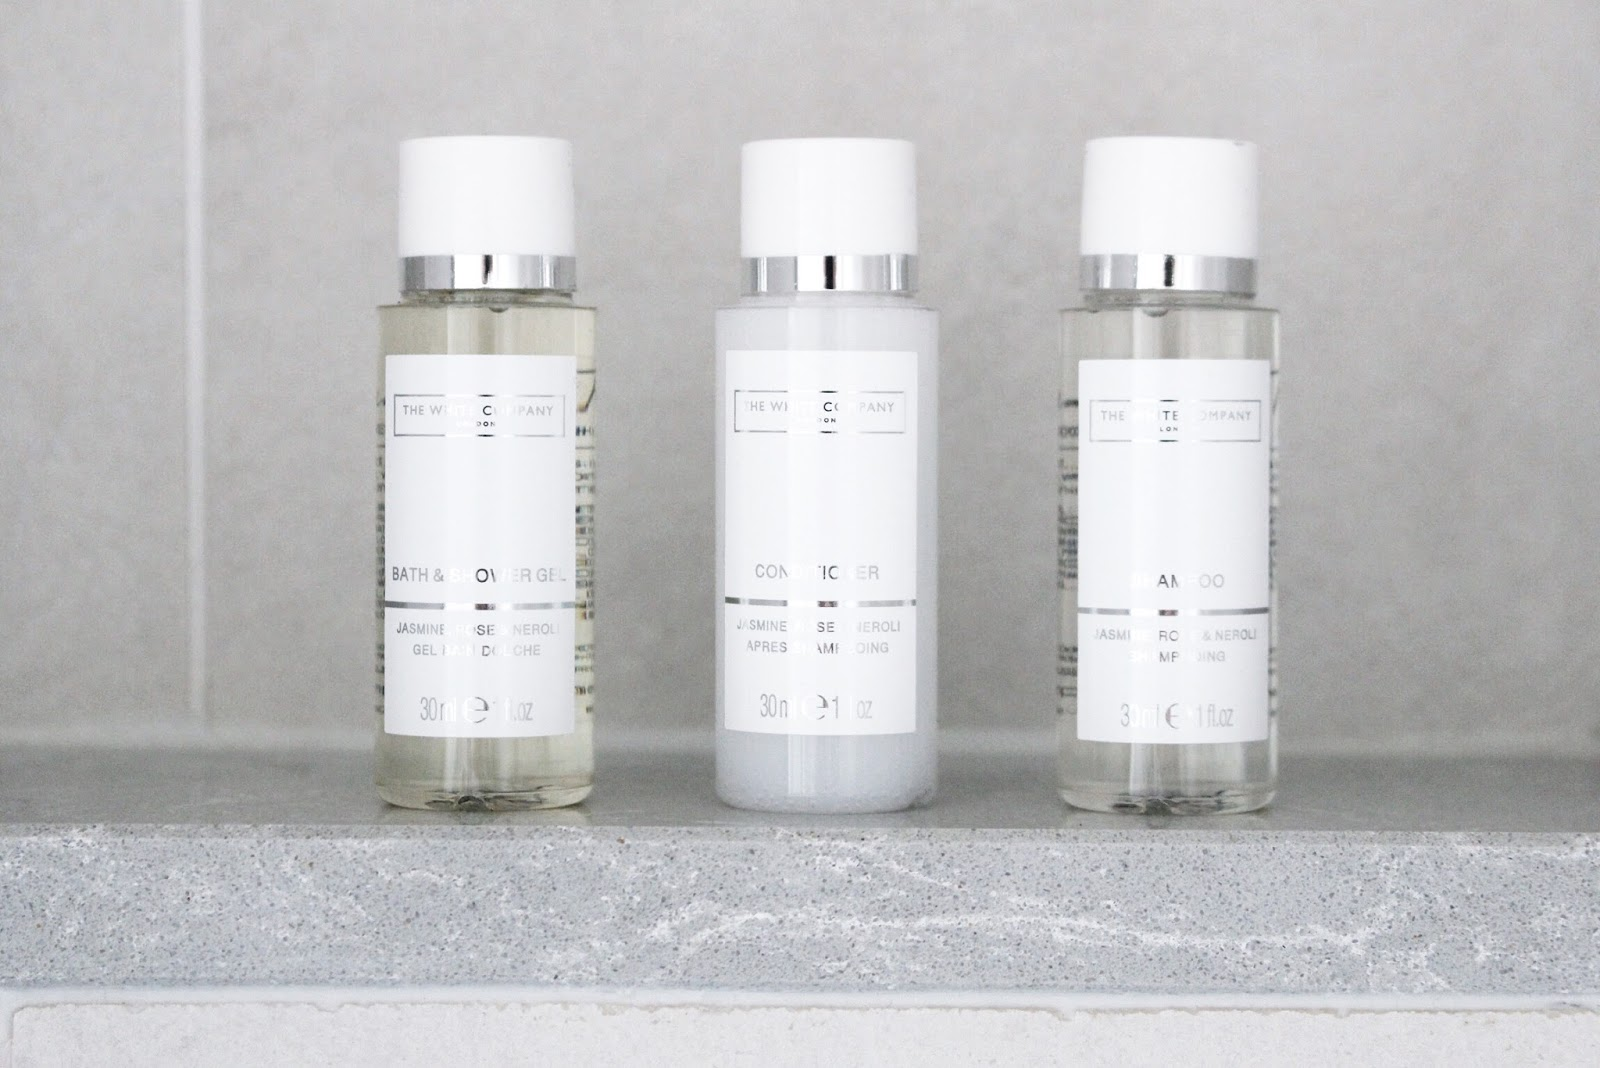 The White Company Hotel Toiletries